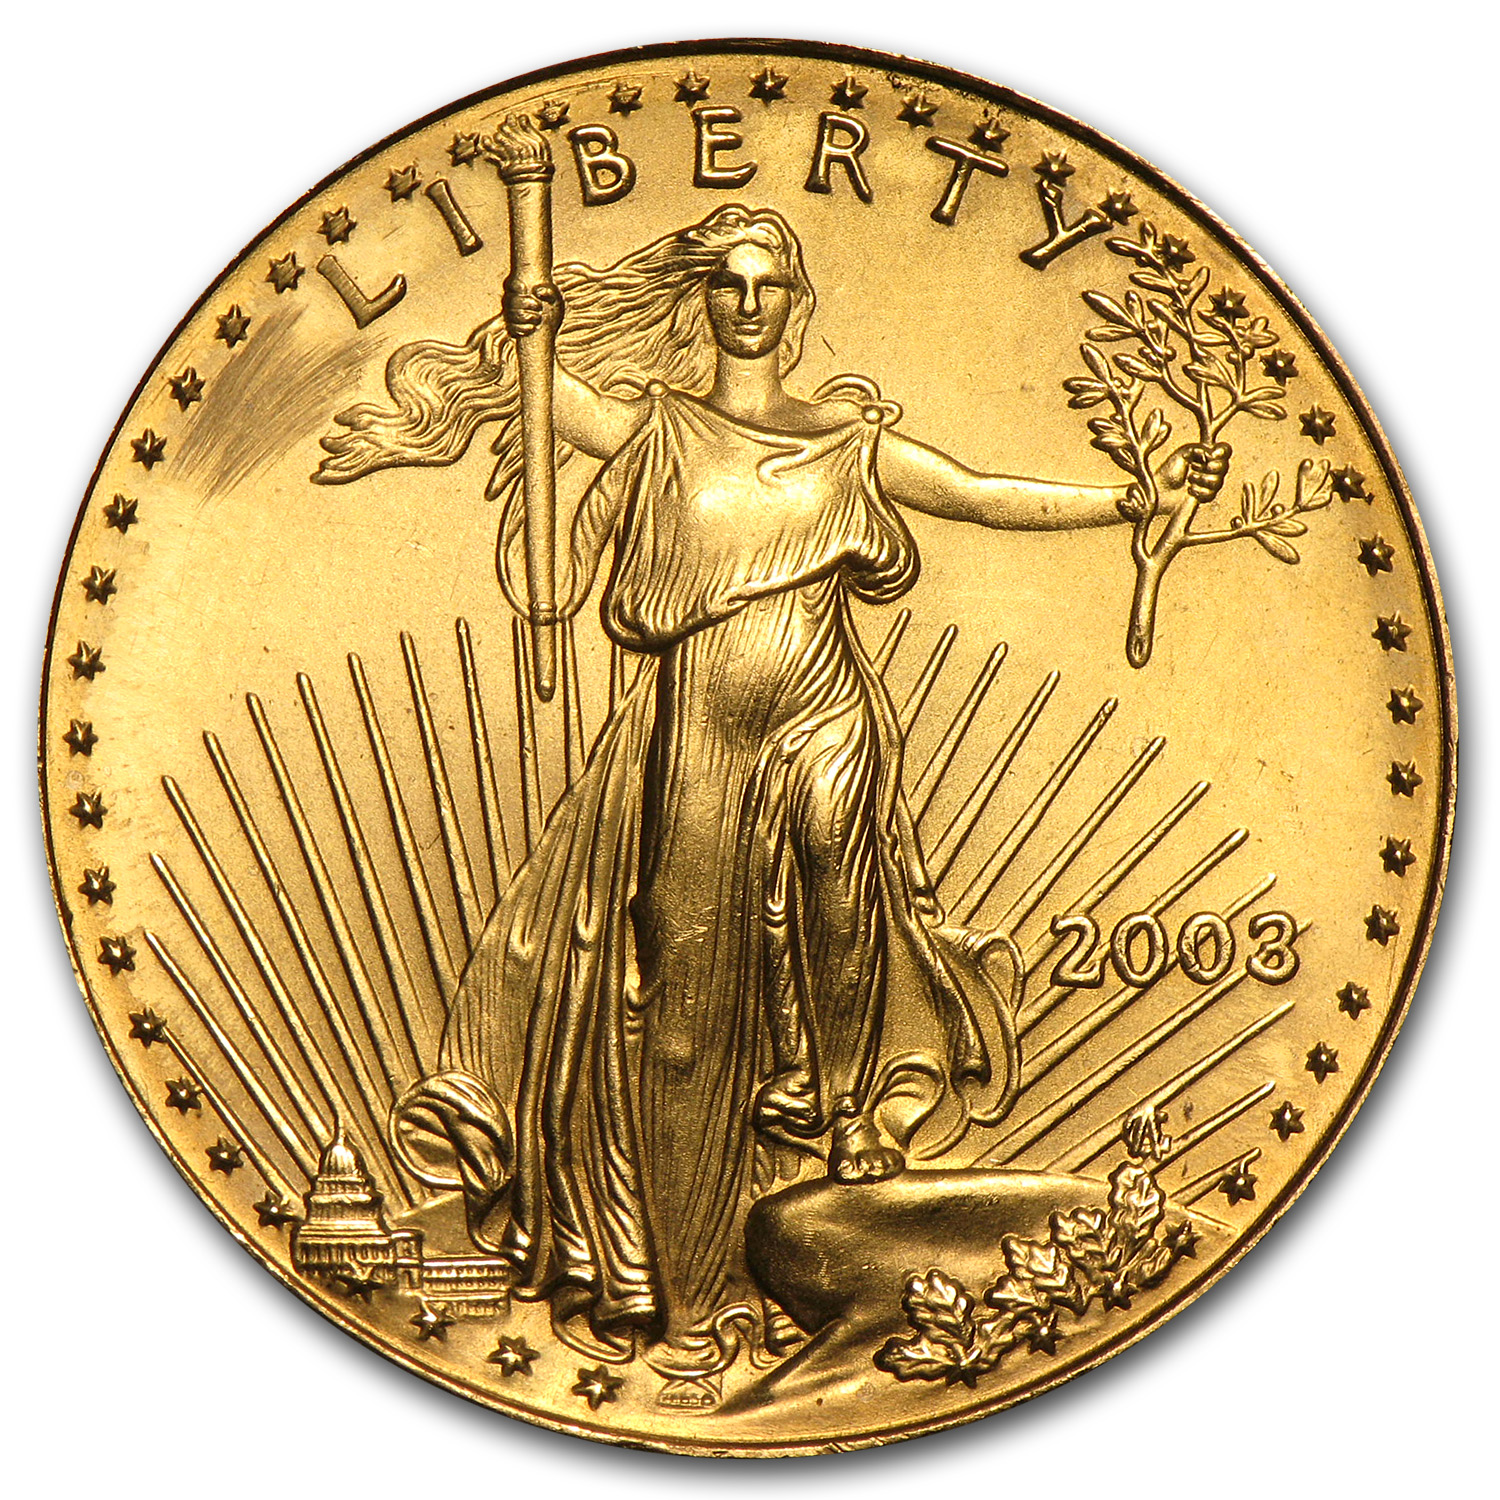 1/2 oz Gold American Eagle (Abrasions)